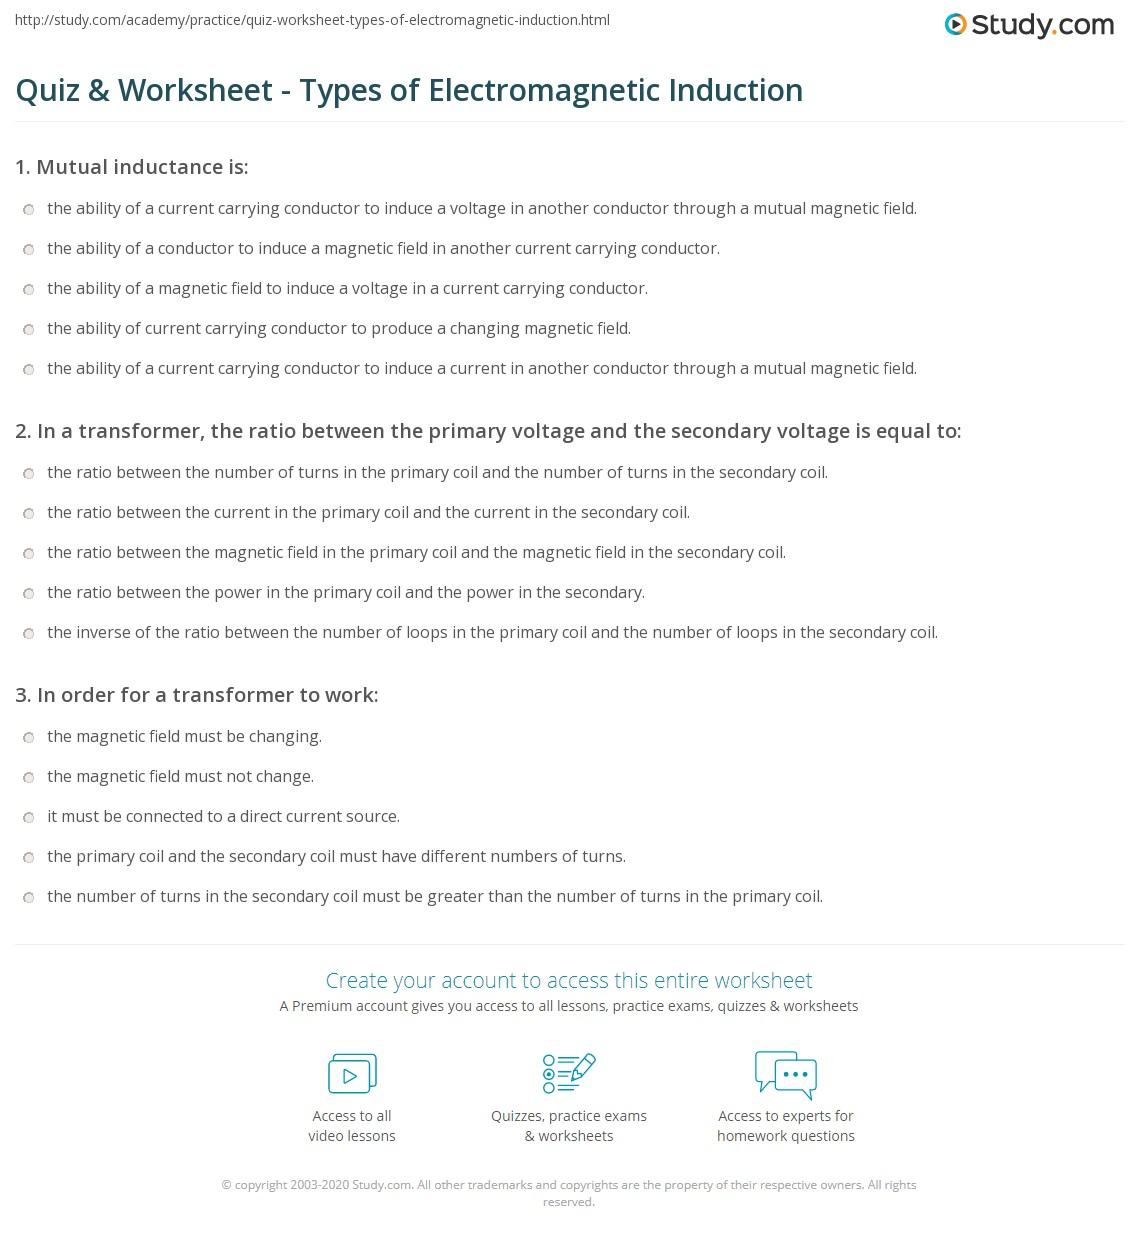 quiz worksheet types of electromagnetic induction. Black Bedroom Furniture Sets. Home Design Ideas